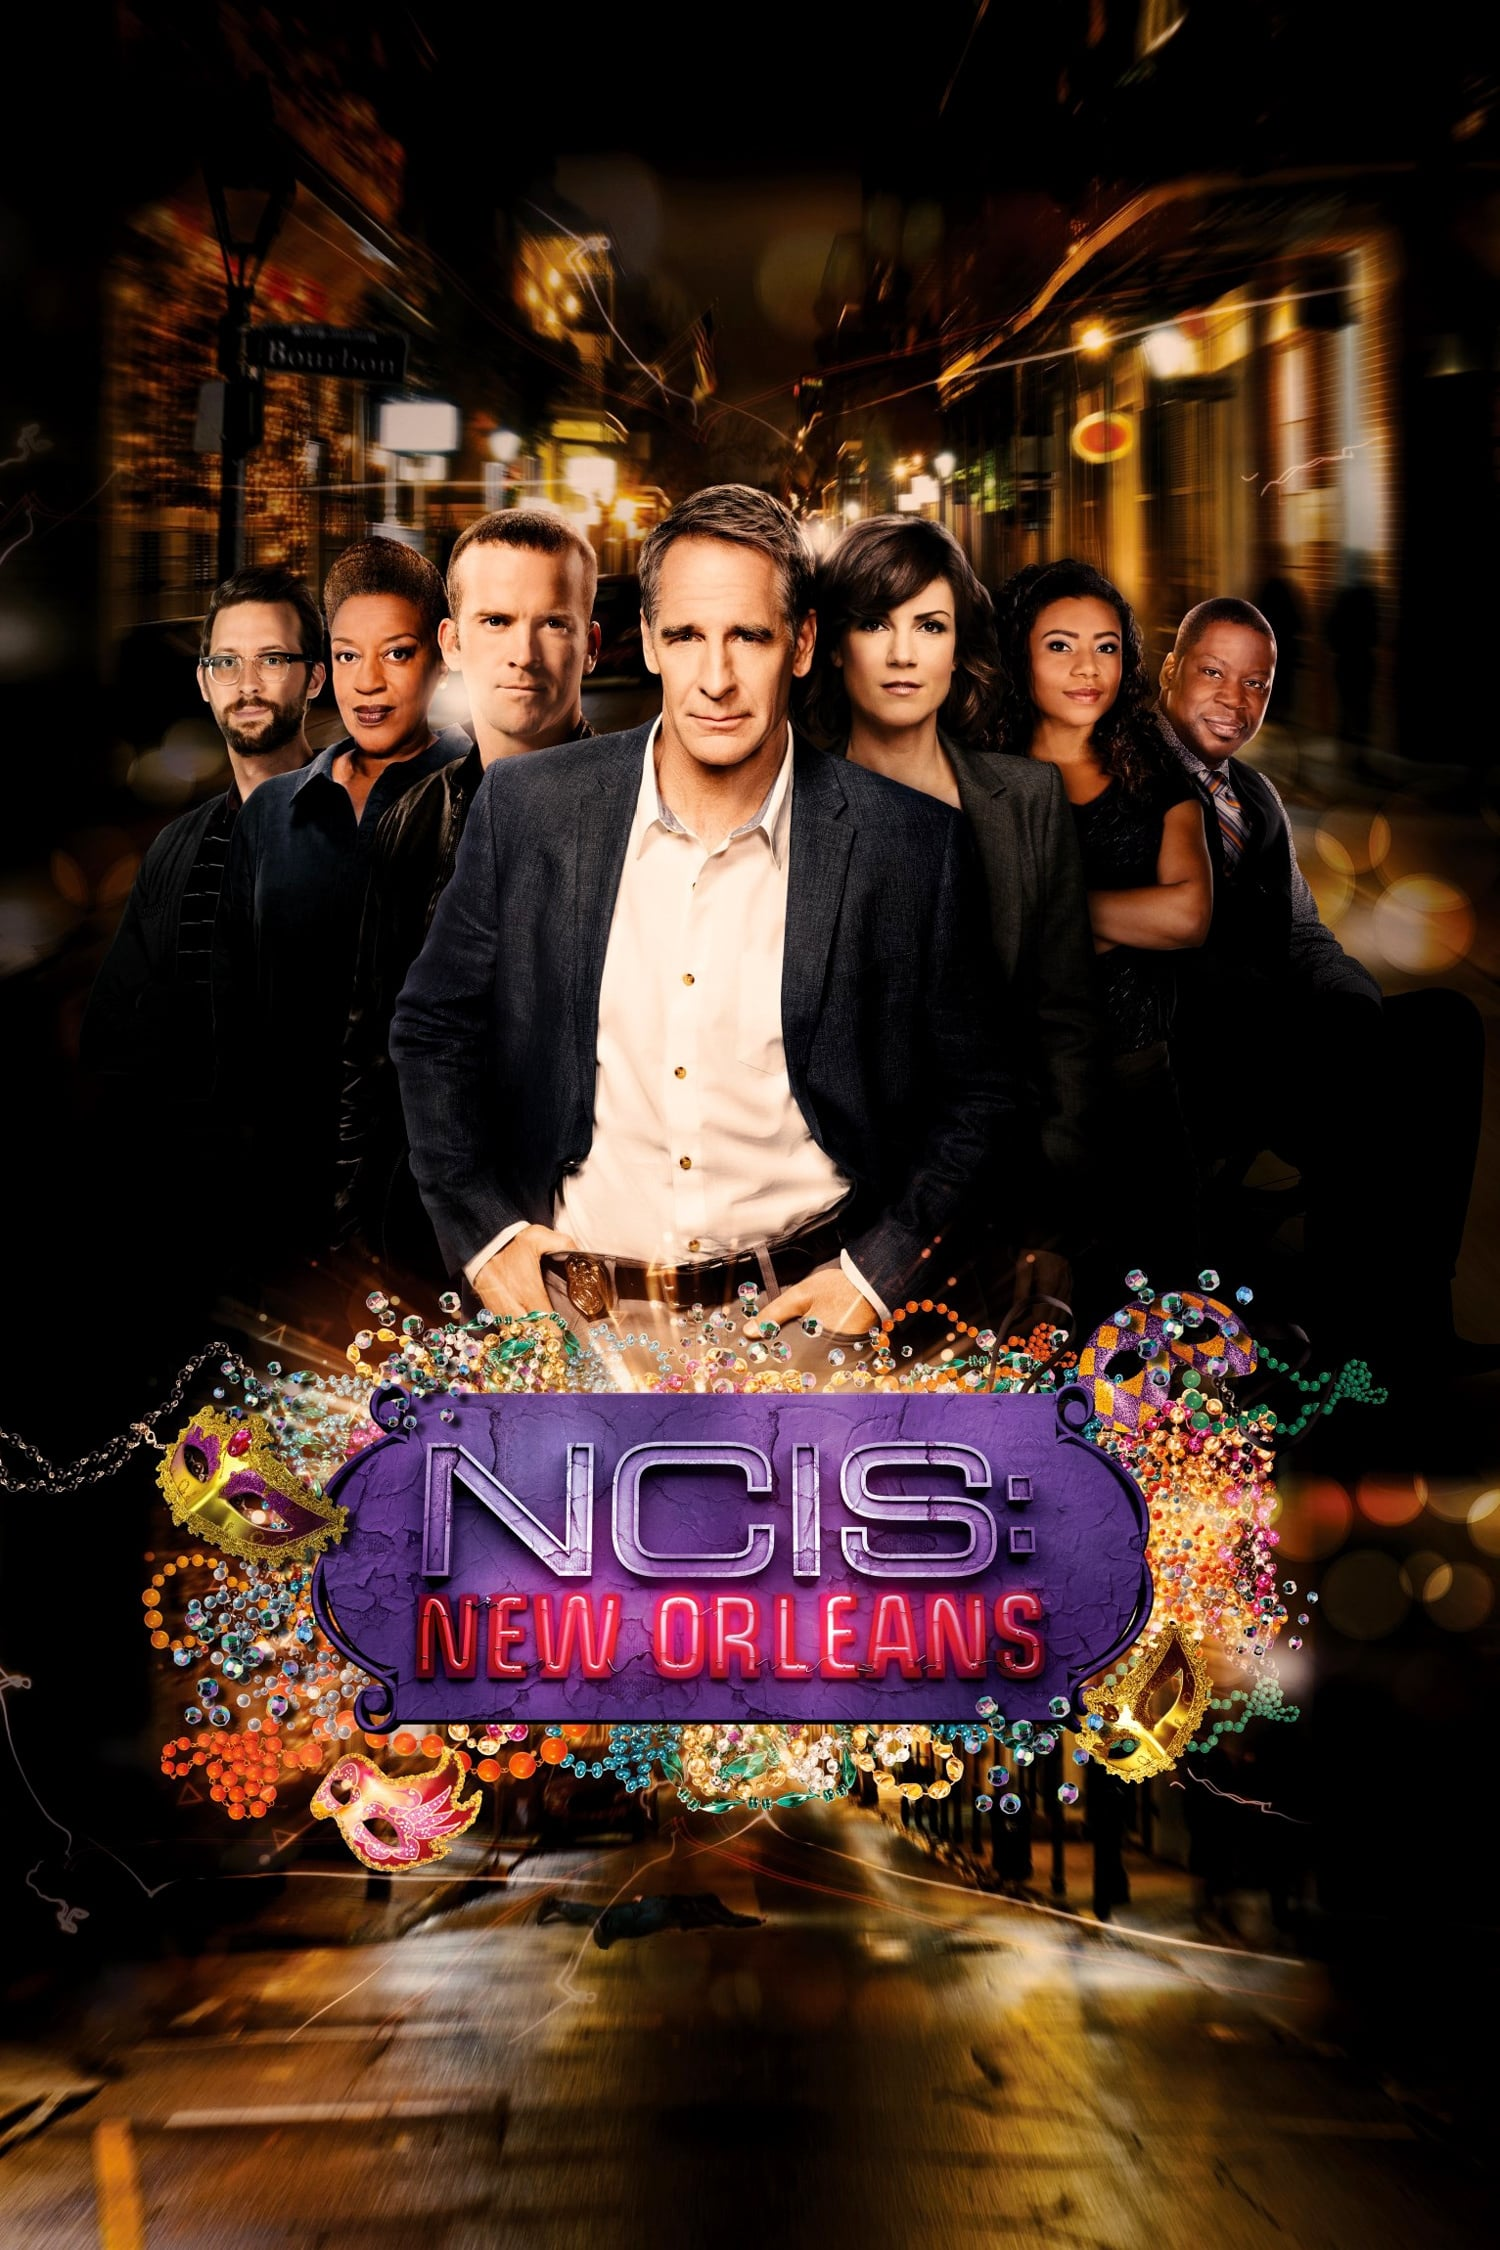 New Orleans Ncis